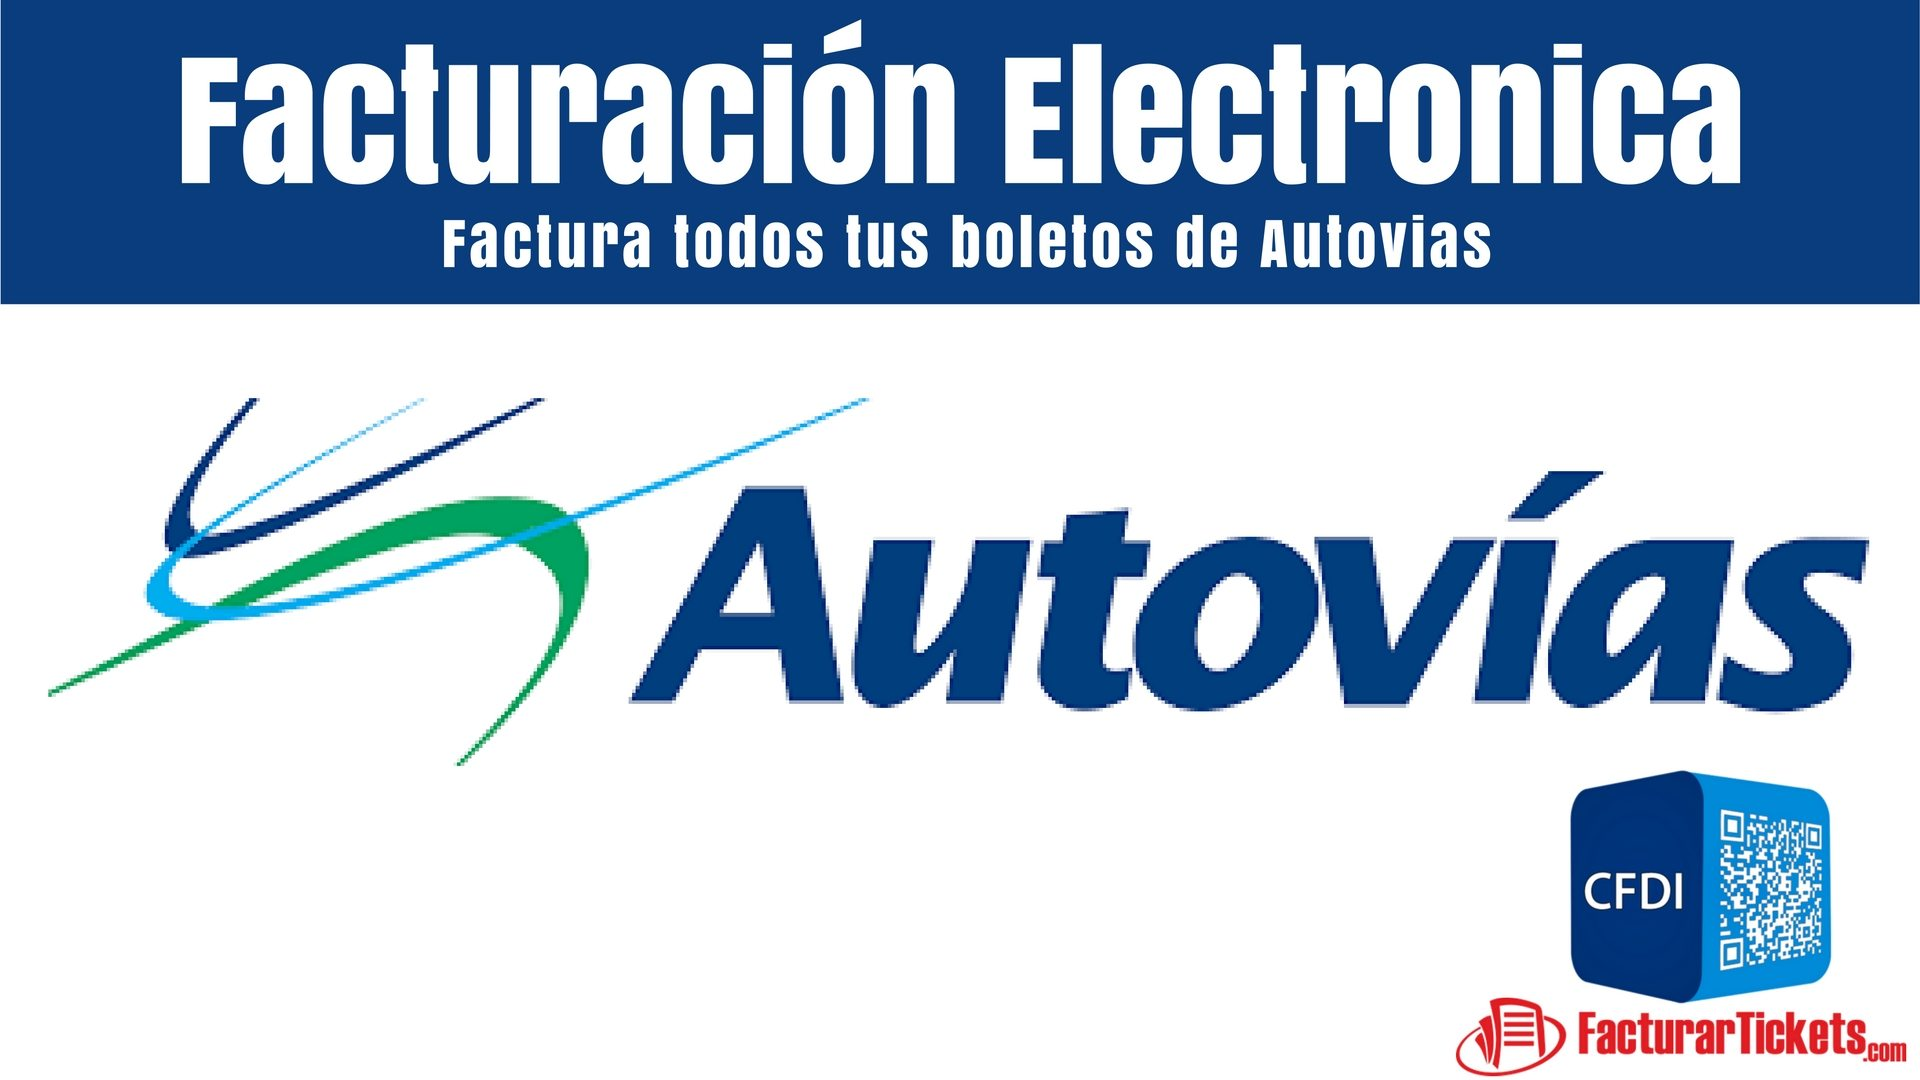 Autovias facturacion electronica de grupo herradura occidente